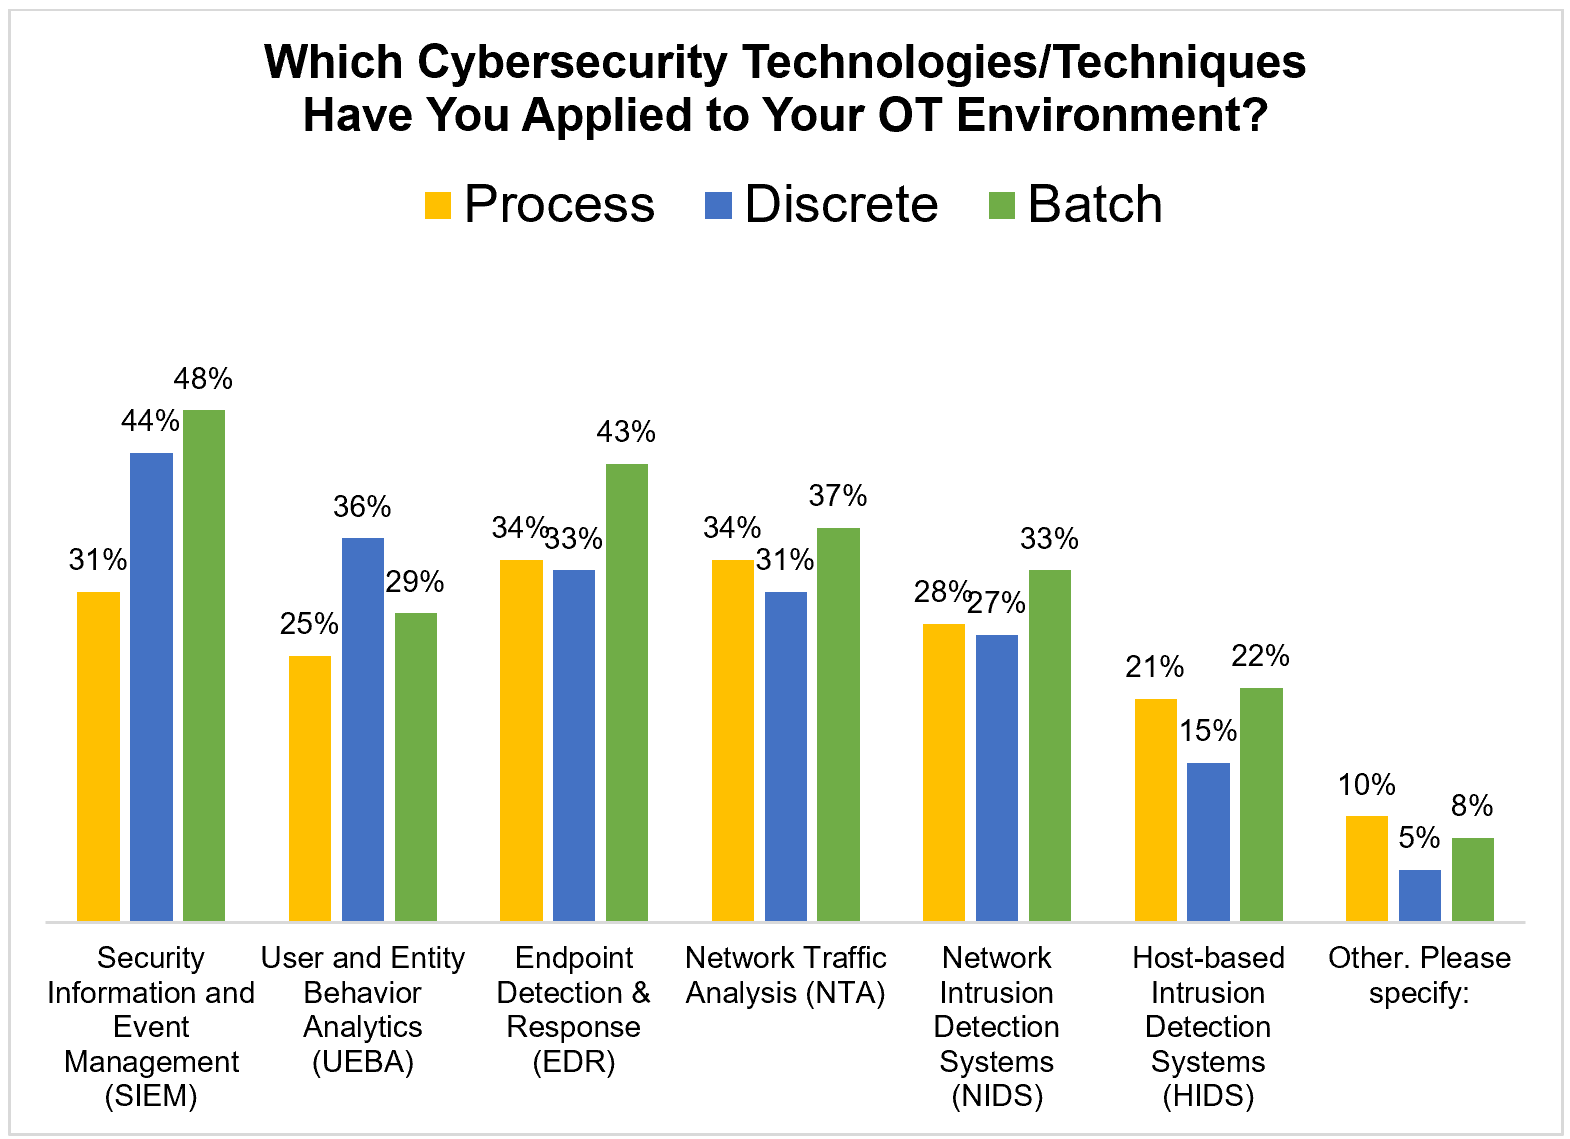 Cybersecurity Technologies + Techniques in OT Environment